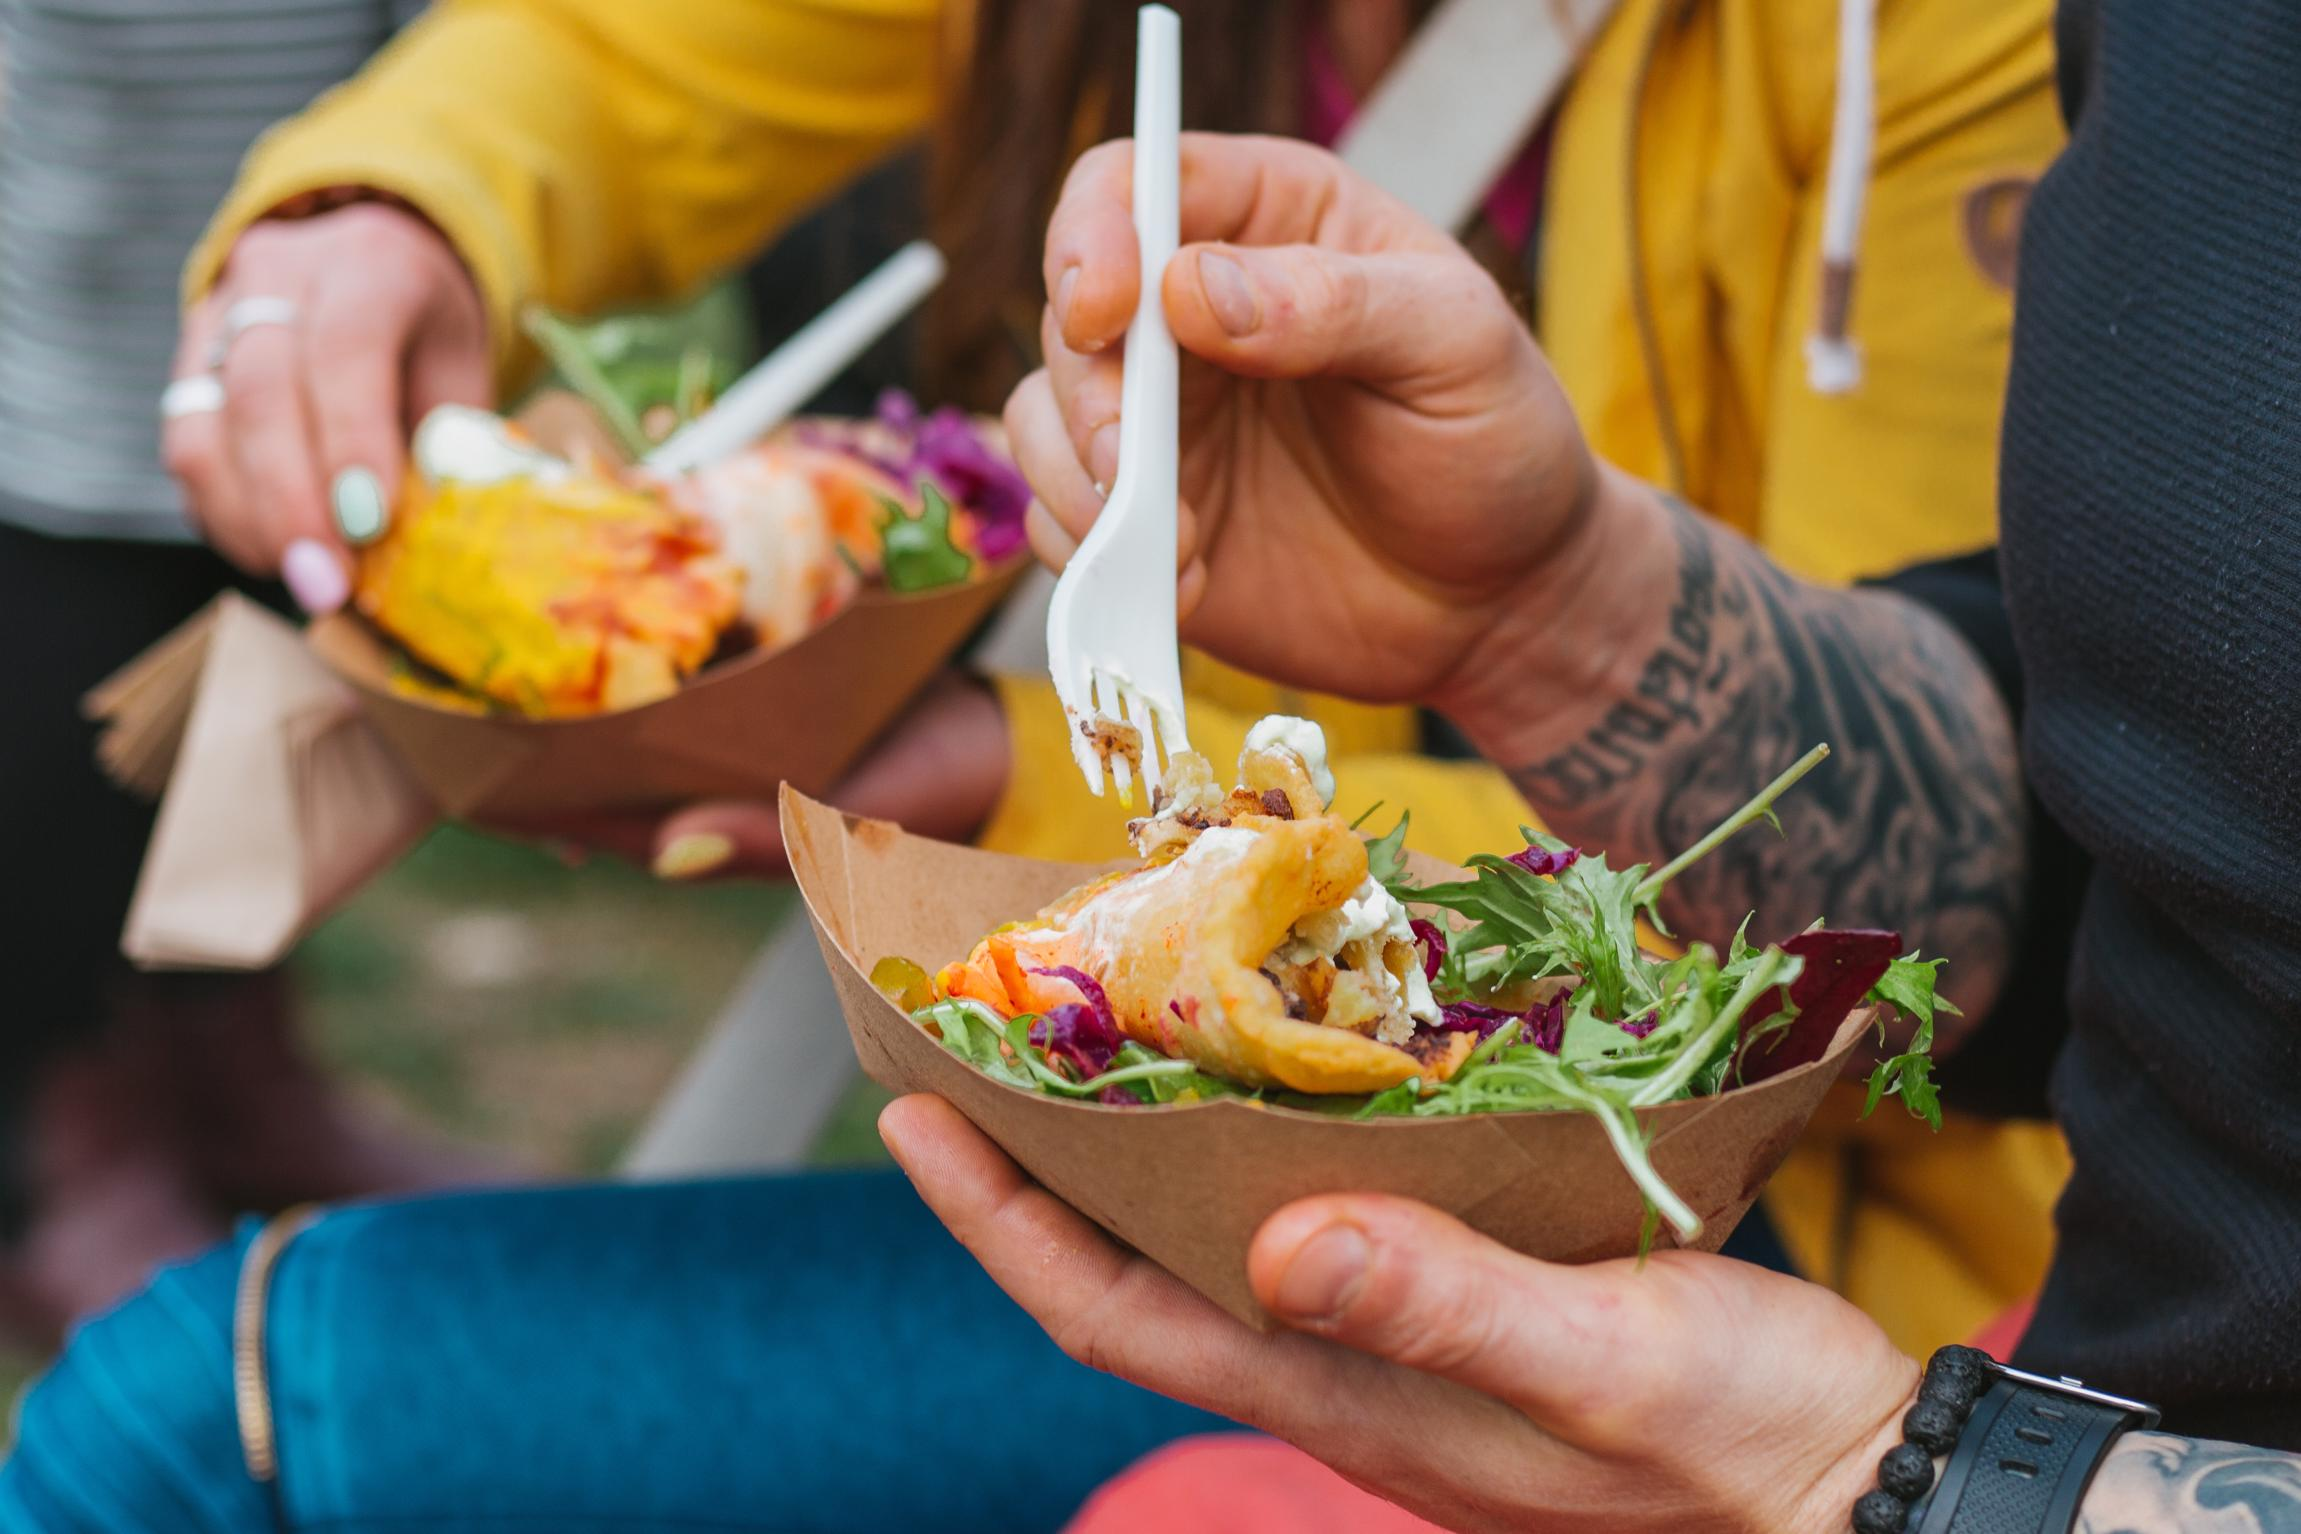 HANDS HOLDING FORKS IN PAPER BOAST FULL OF VEGAN TACOS AND SALAD. AT VEGFEST.